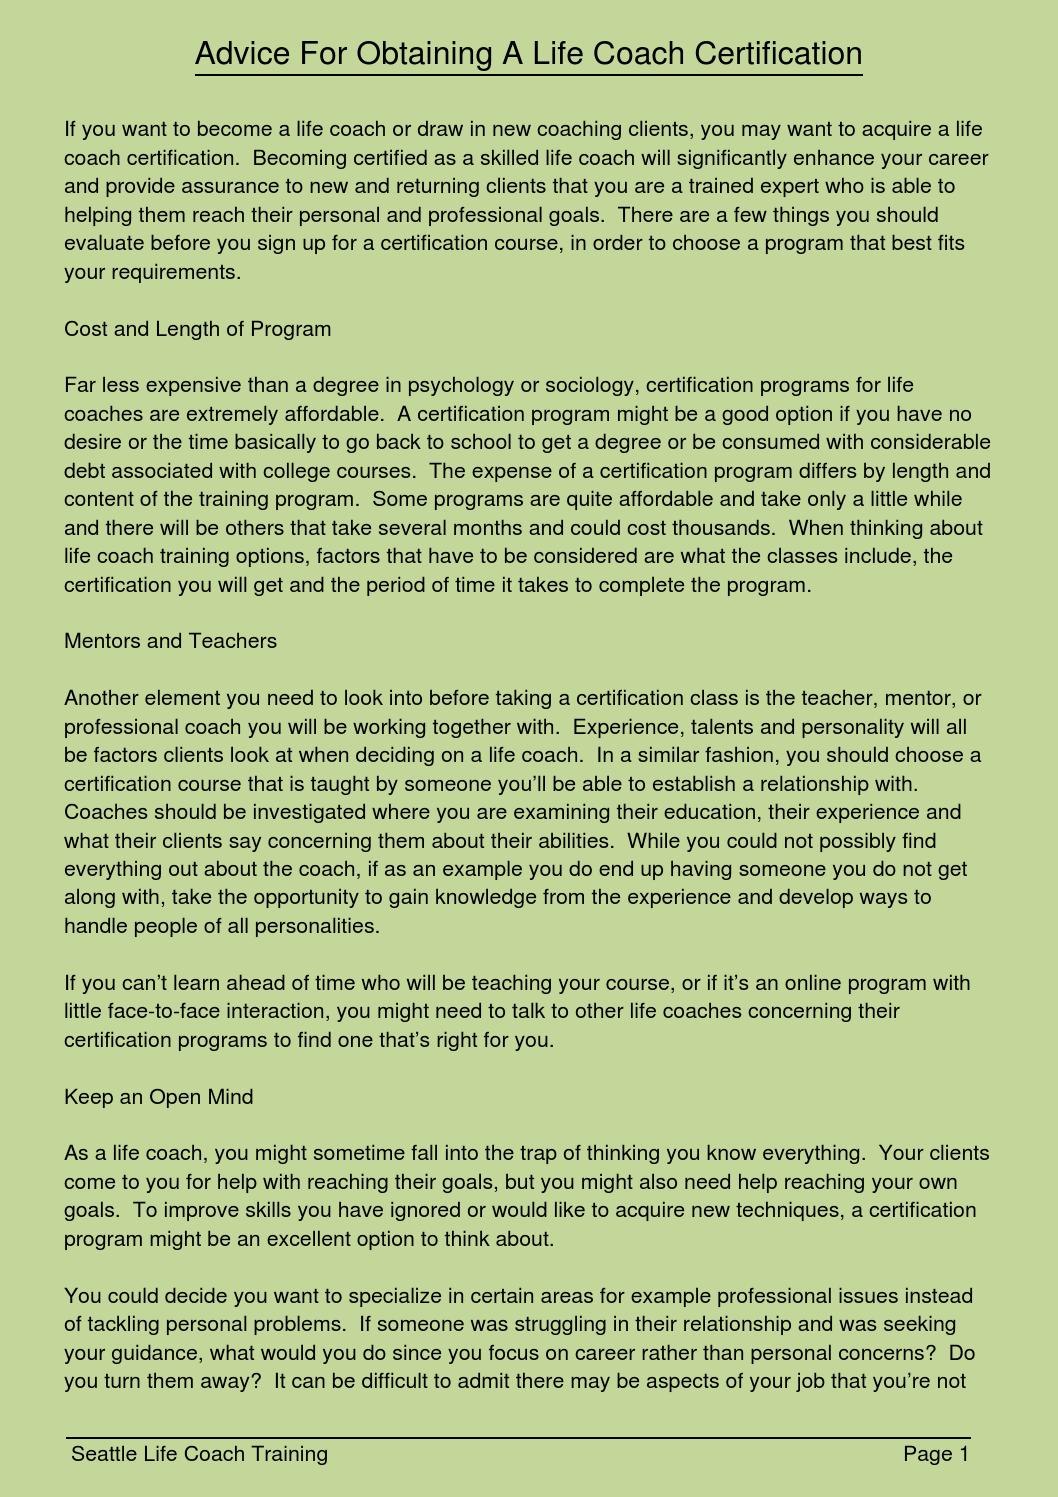 Advice For Obtaining A Life Coach Certification By Ppauline41422 Issuu